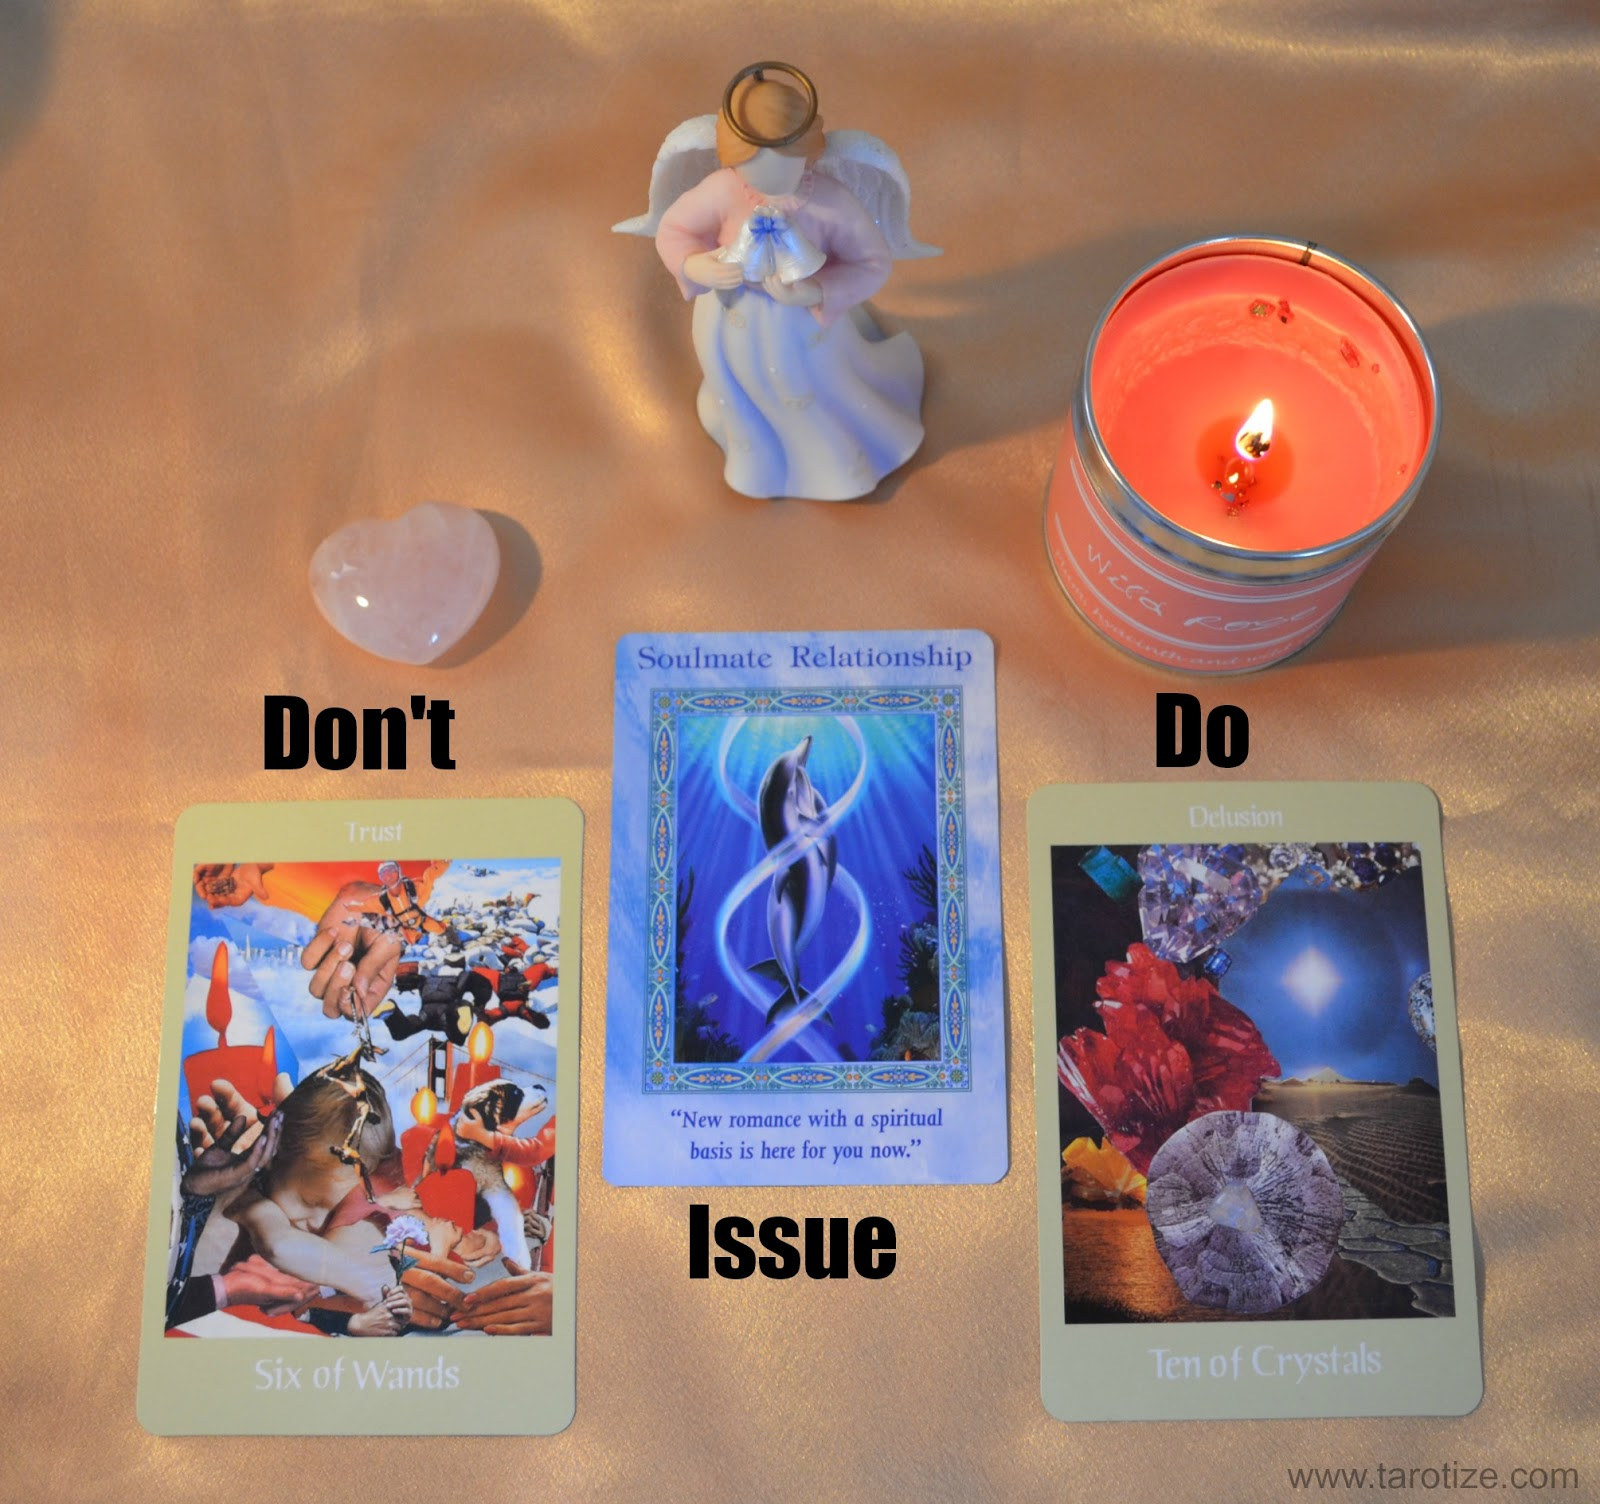 3 of cups tarot guide